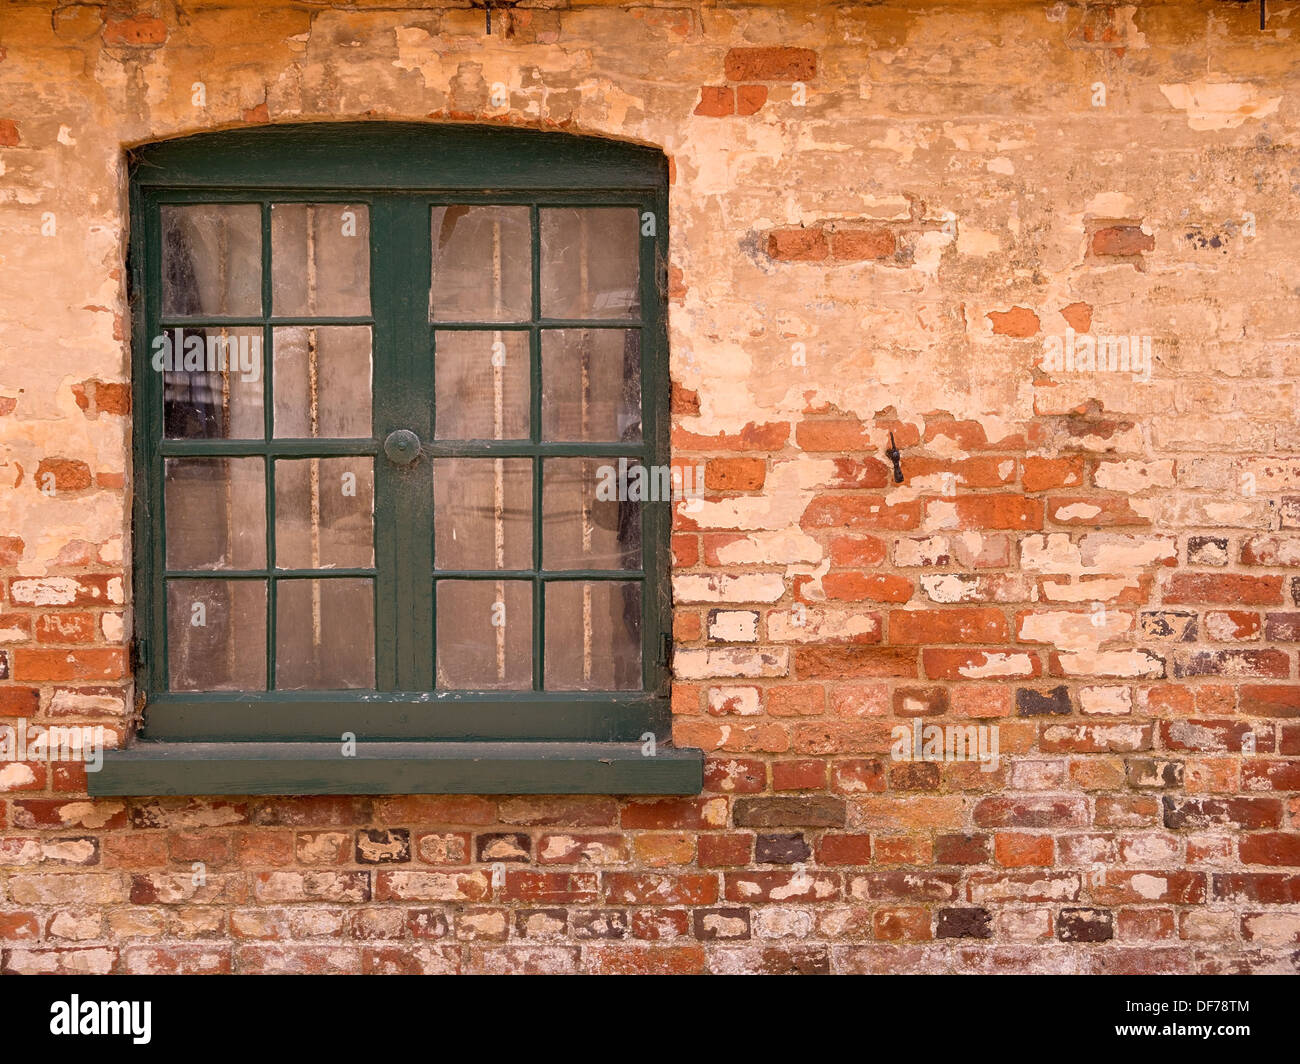 Old wooden window with green painted frame set in old red brick wall stock photo royalty free - Painted brick exterior pictures set ...